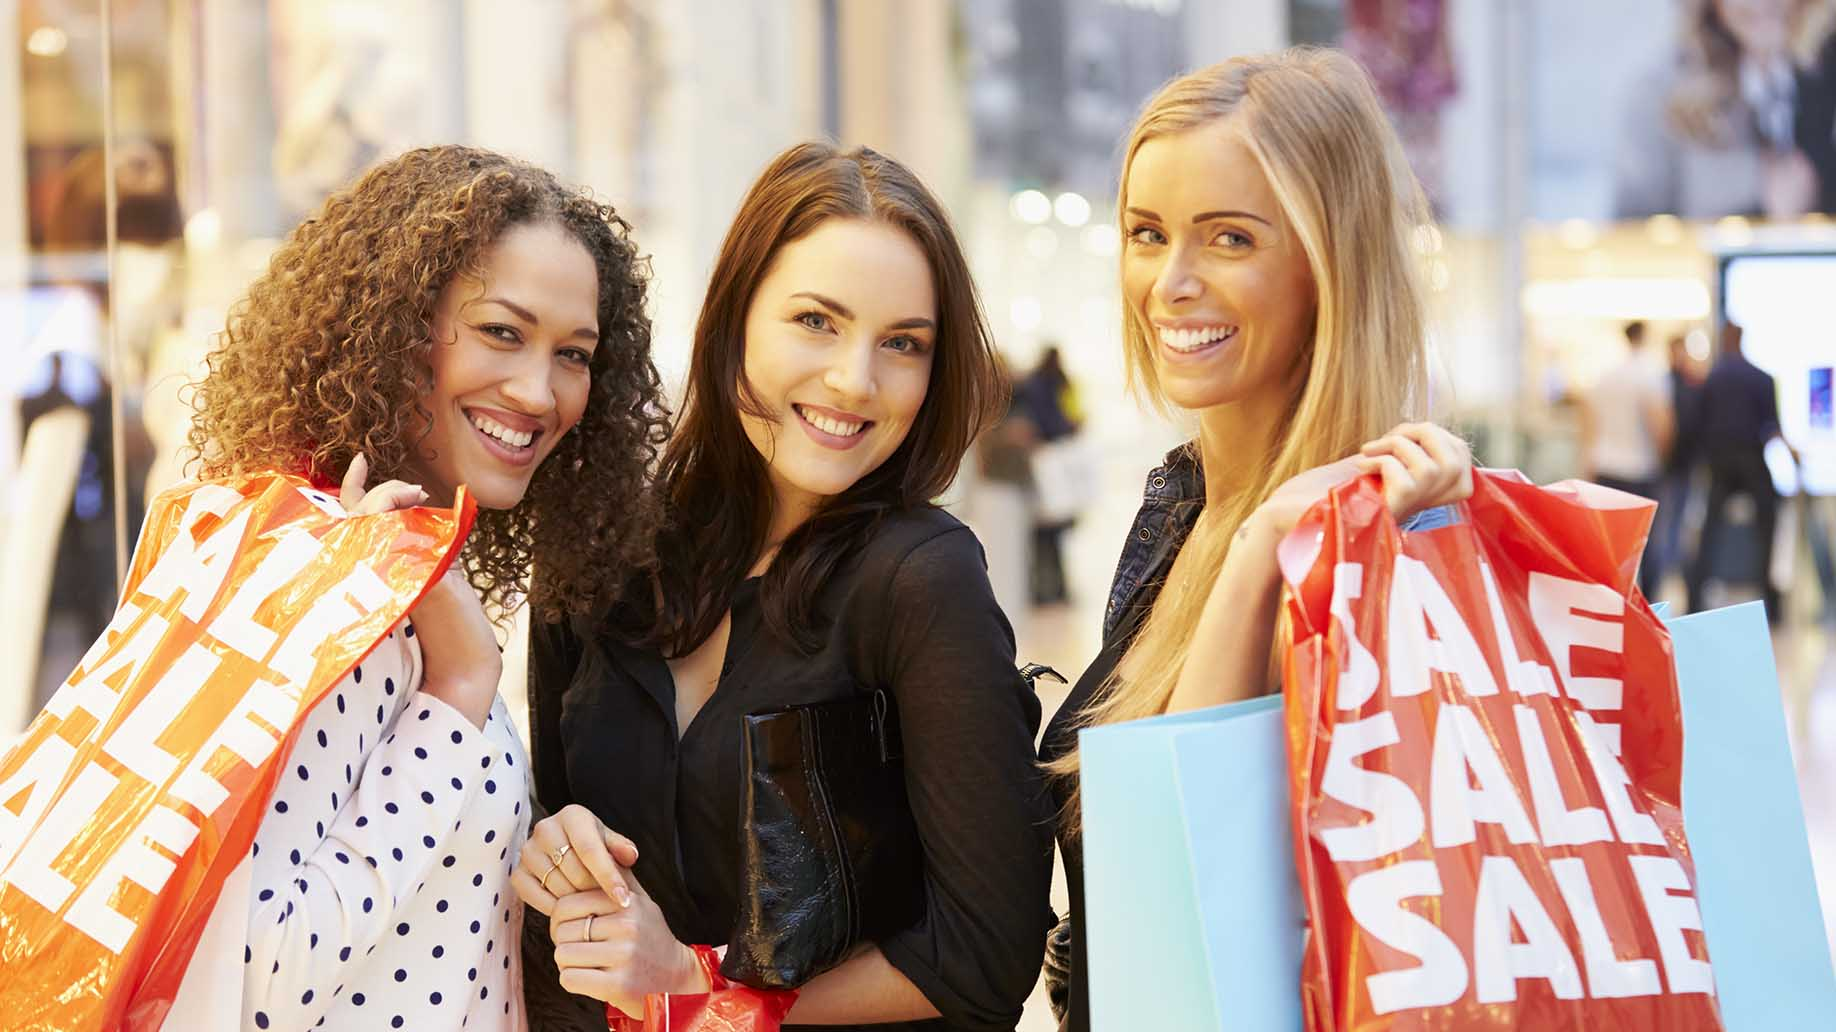 three female friends shopping mal together